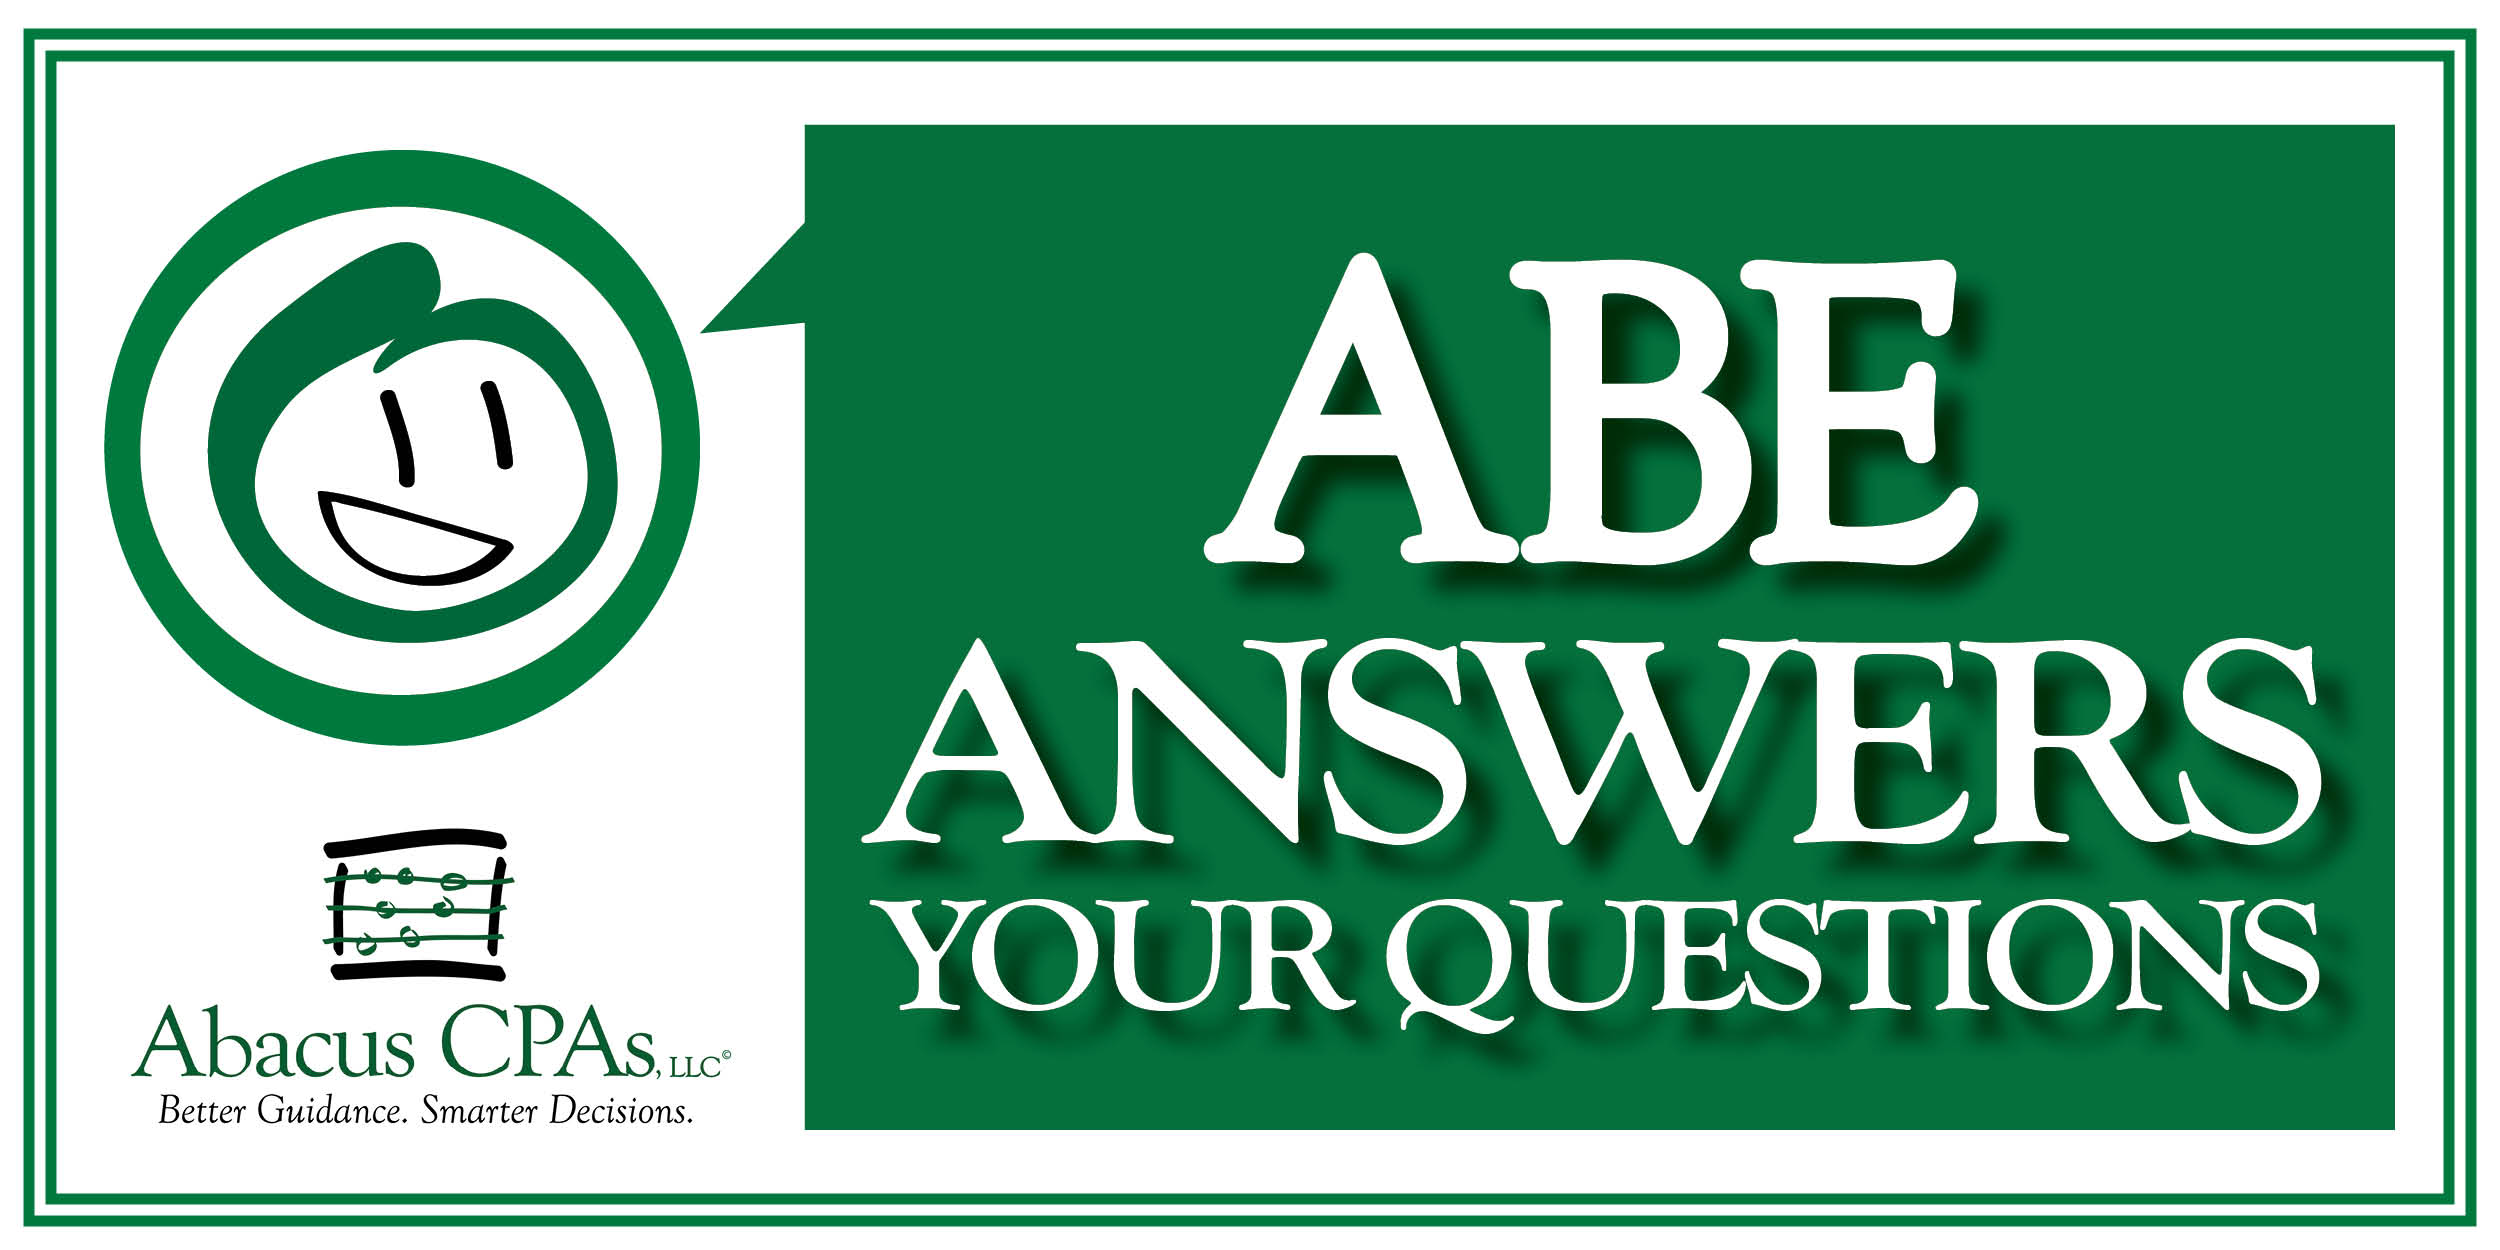 Abe Answers: Moving Across State Lines